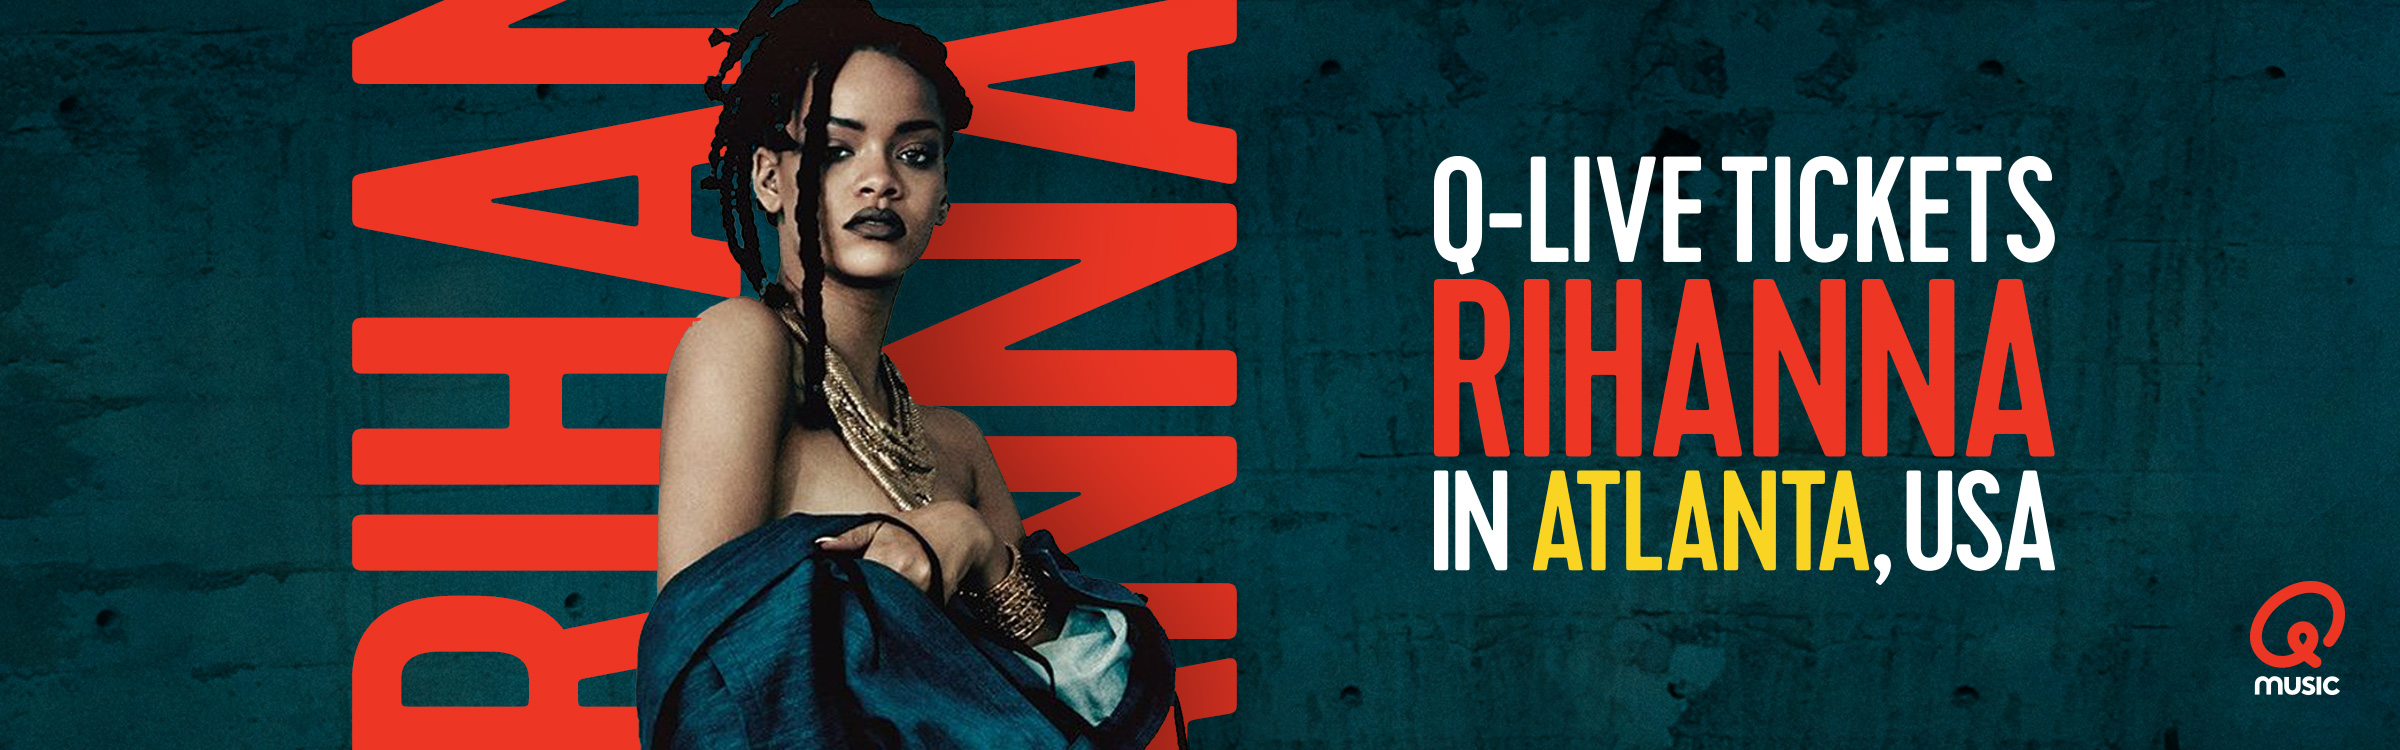 Qmusic actionheader riri